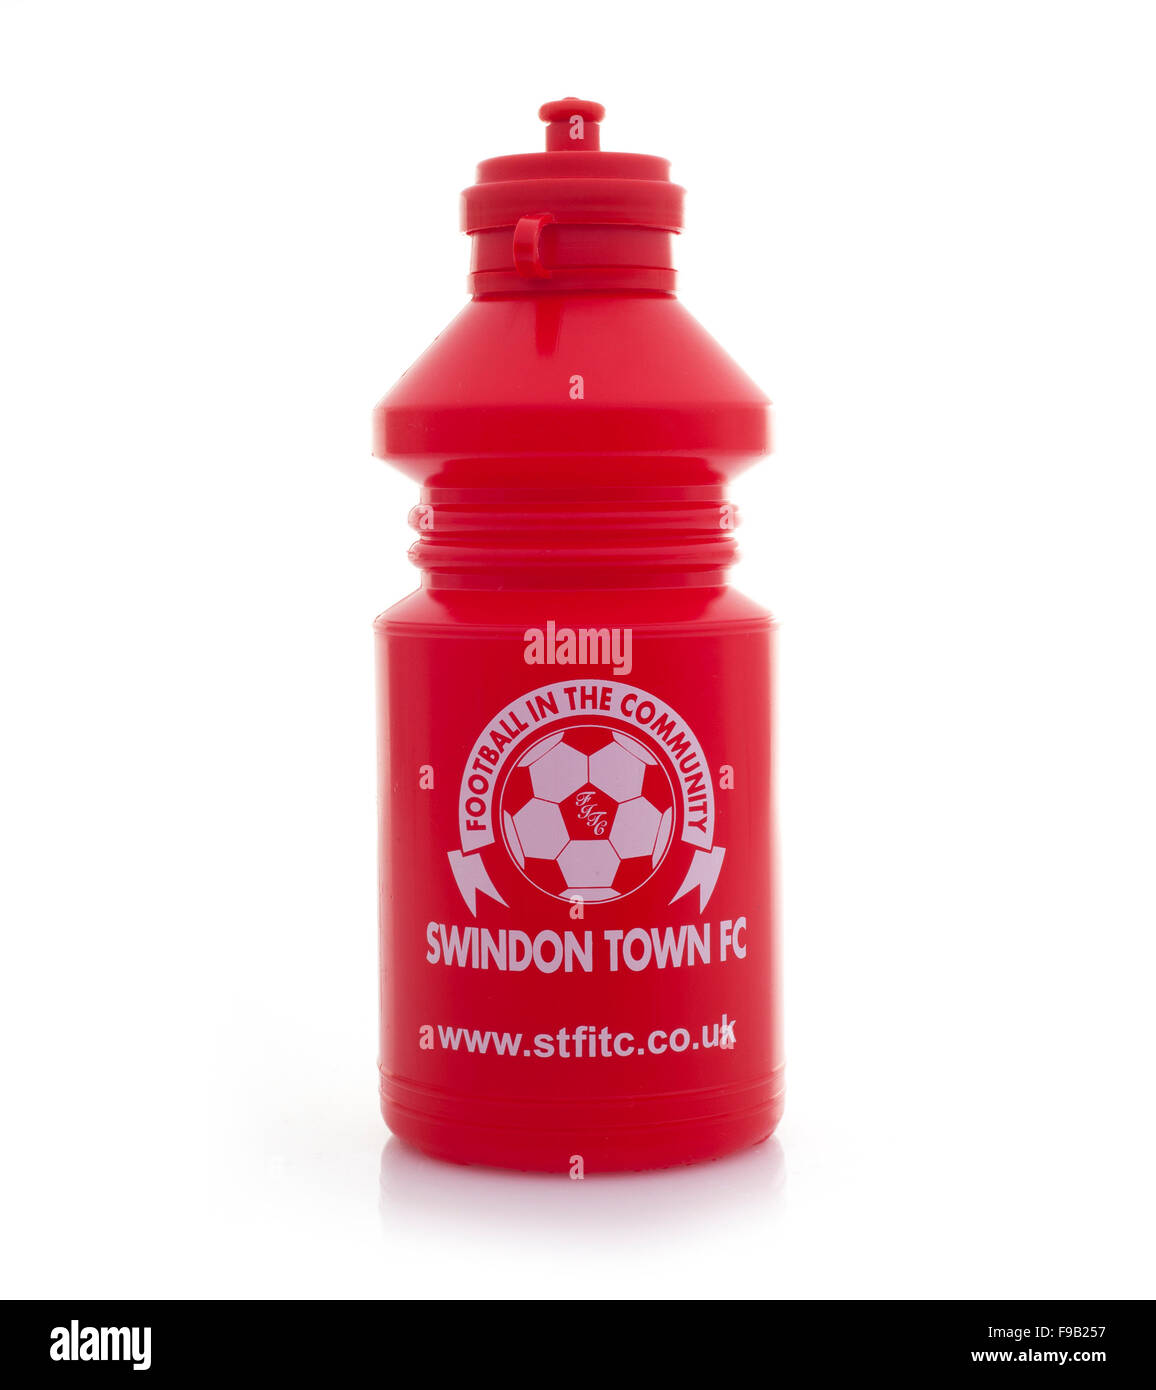 Swindon Town Football Club Drinks Bottle in Red on a White Background - Stock Image